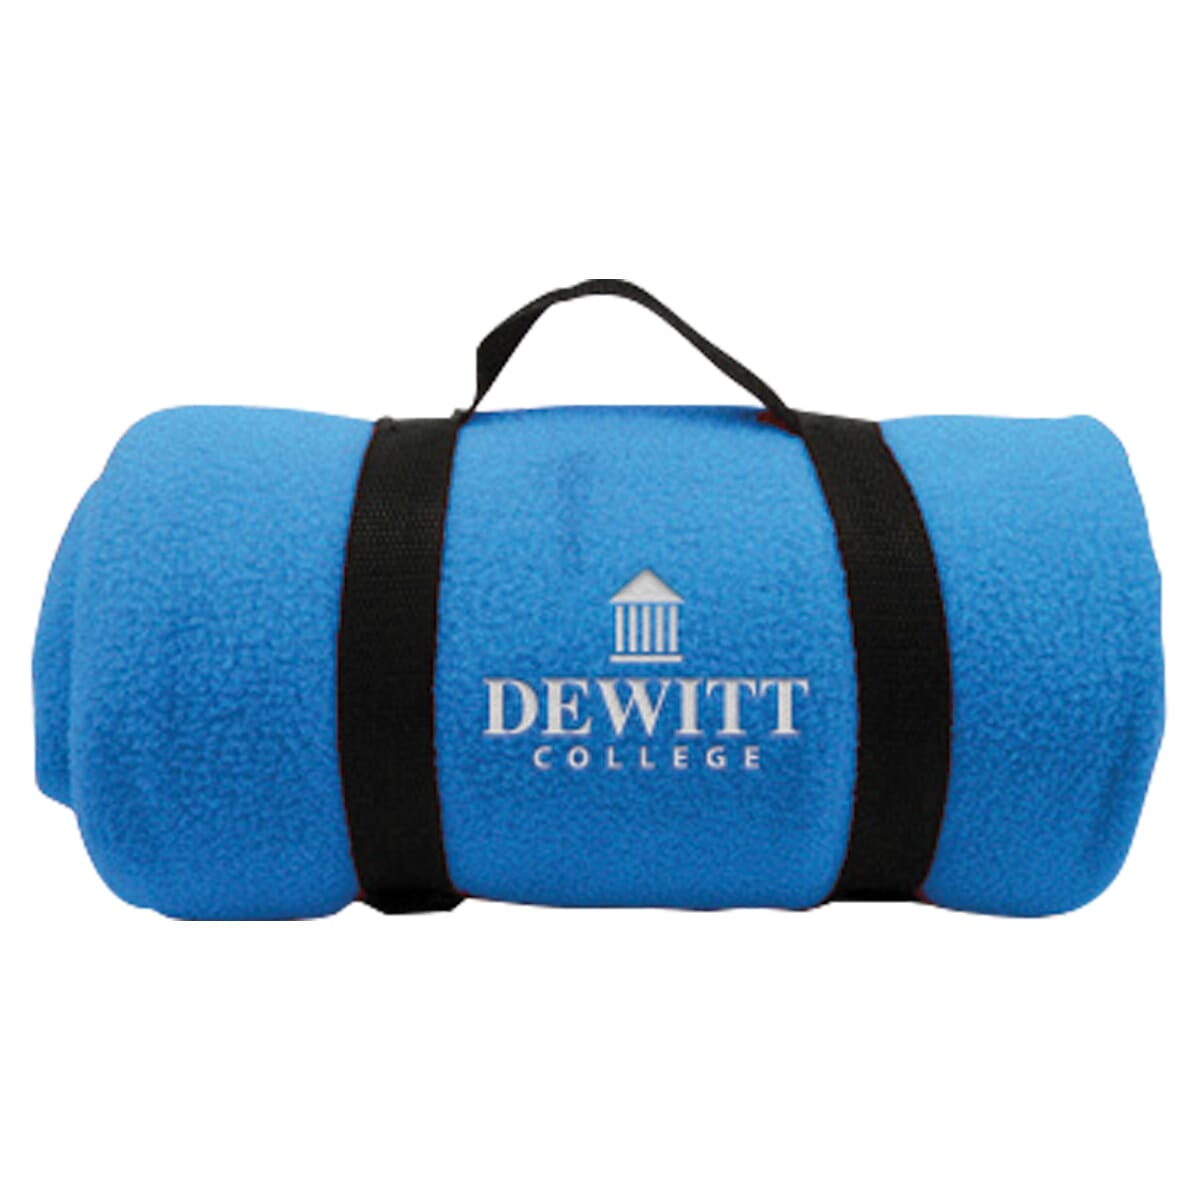 Polar fleece blanket with carrying straps